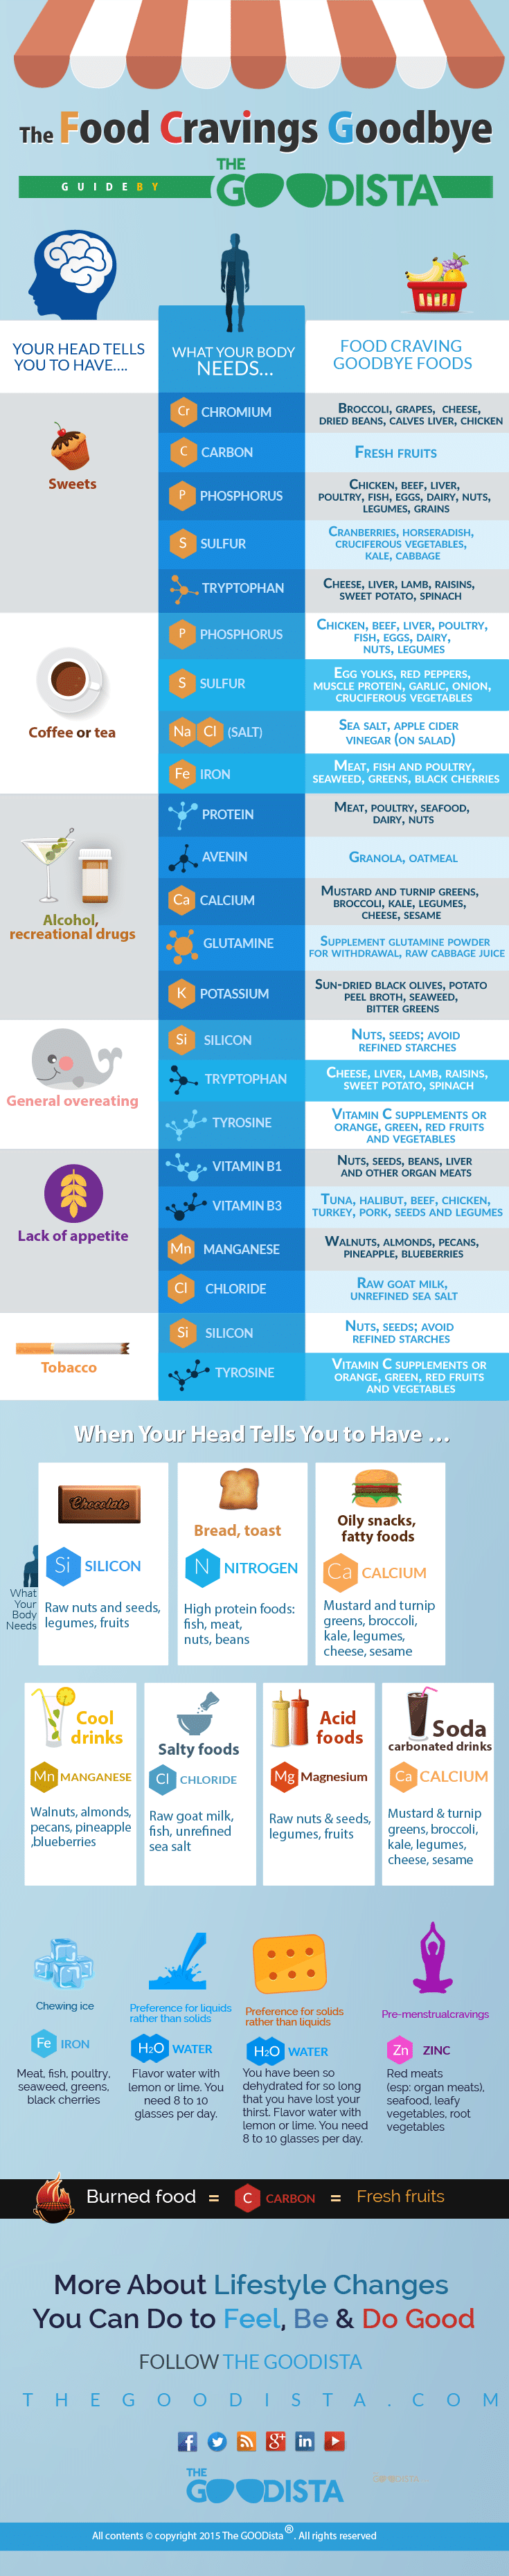 Food Cravings Goodbye Infographic. What you head tells you is not what your body needs. Find healthy alternatives in this guide on thegoodista.com.